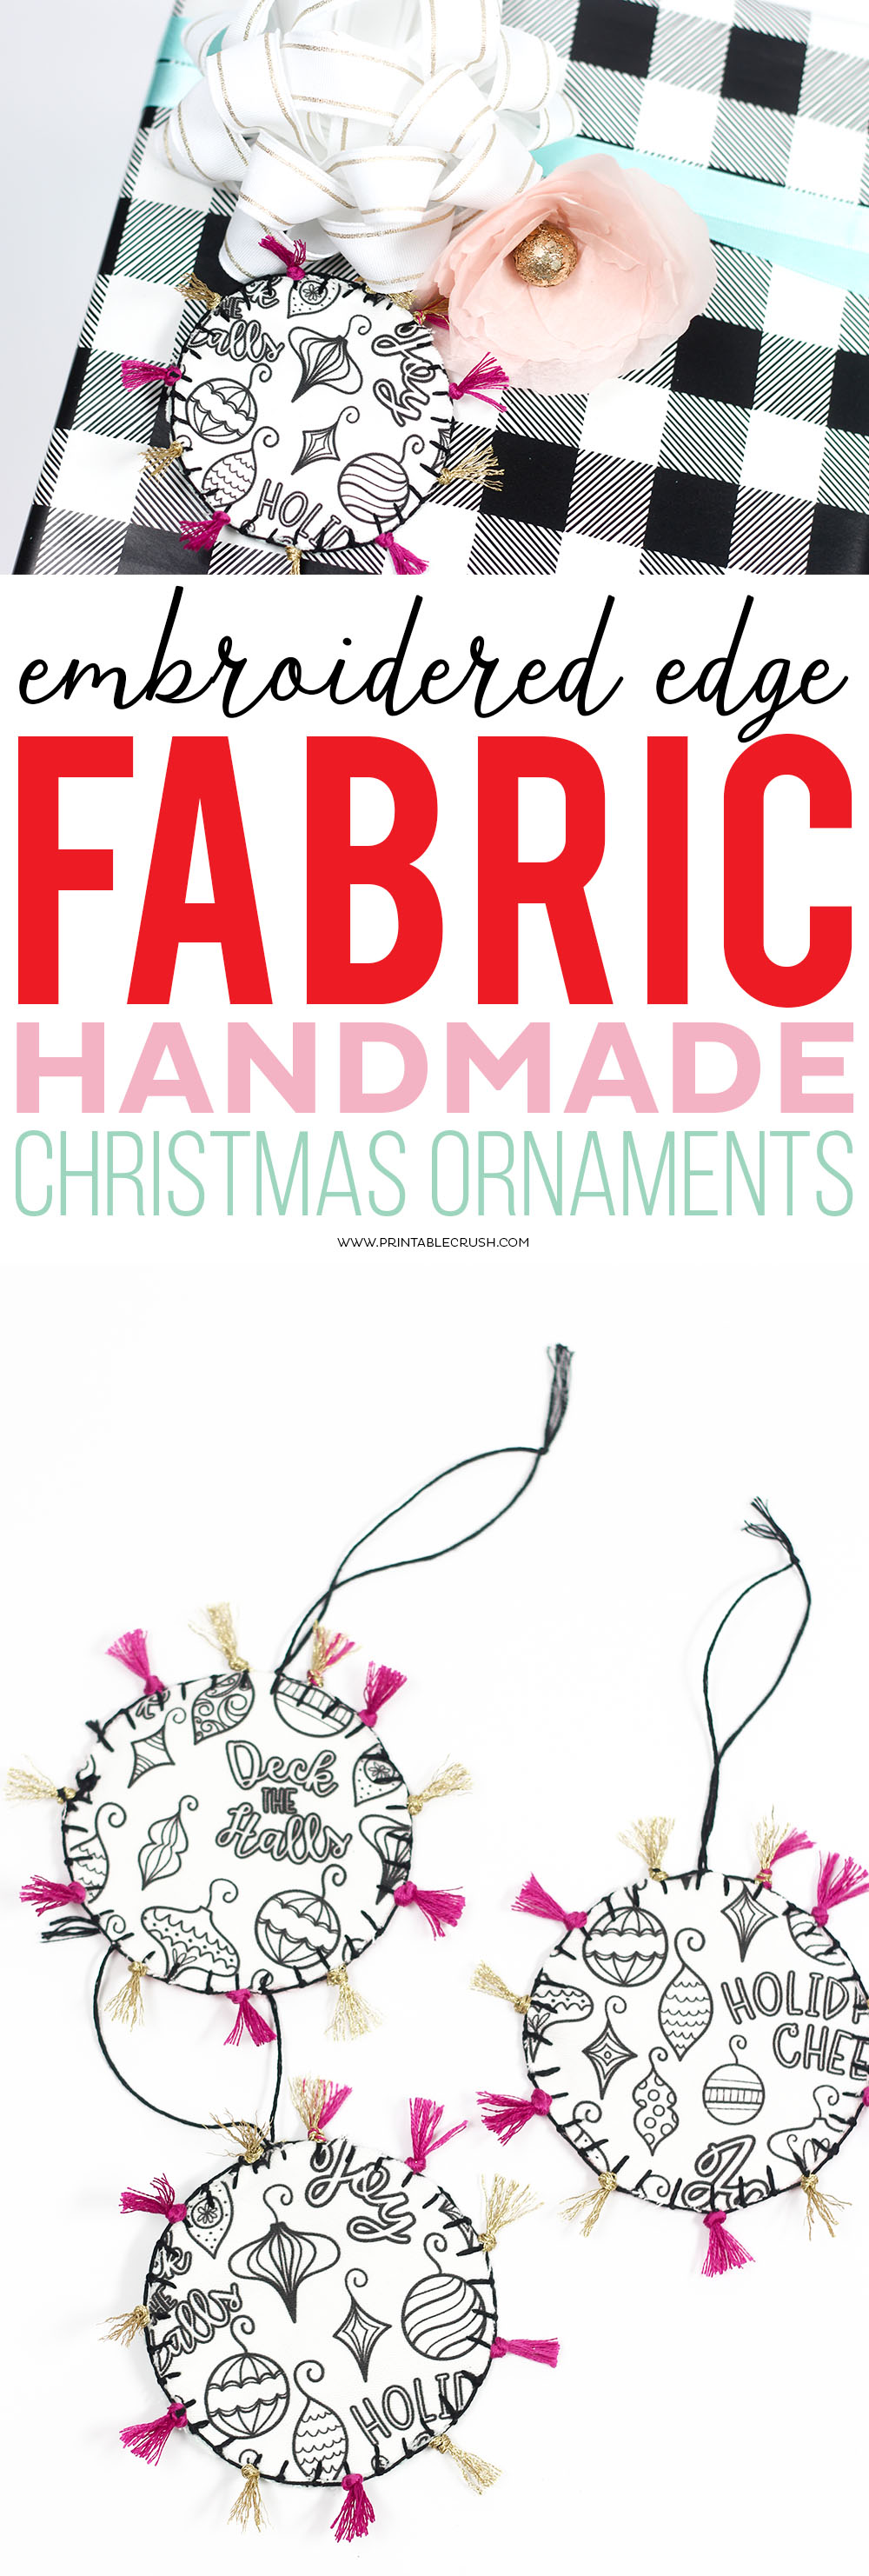 These Fabric Handmade Christmas Ornaments and gift tags are adorable! Learn how to give them an embroidered edge. They're incredibly easy to make!